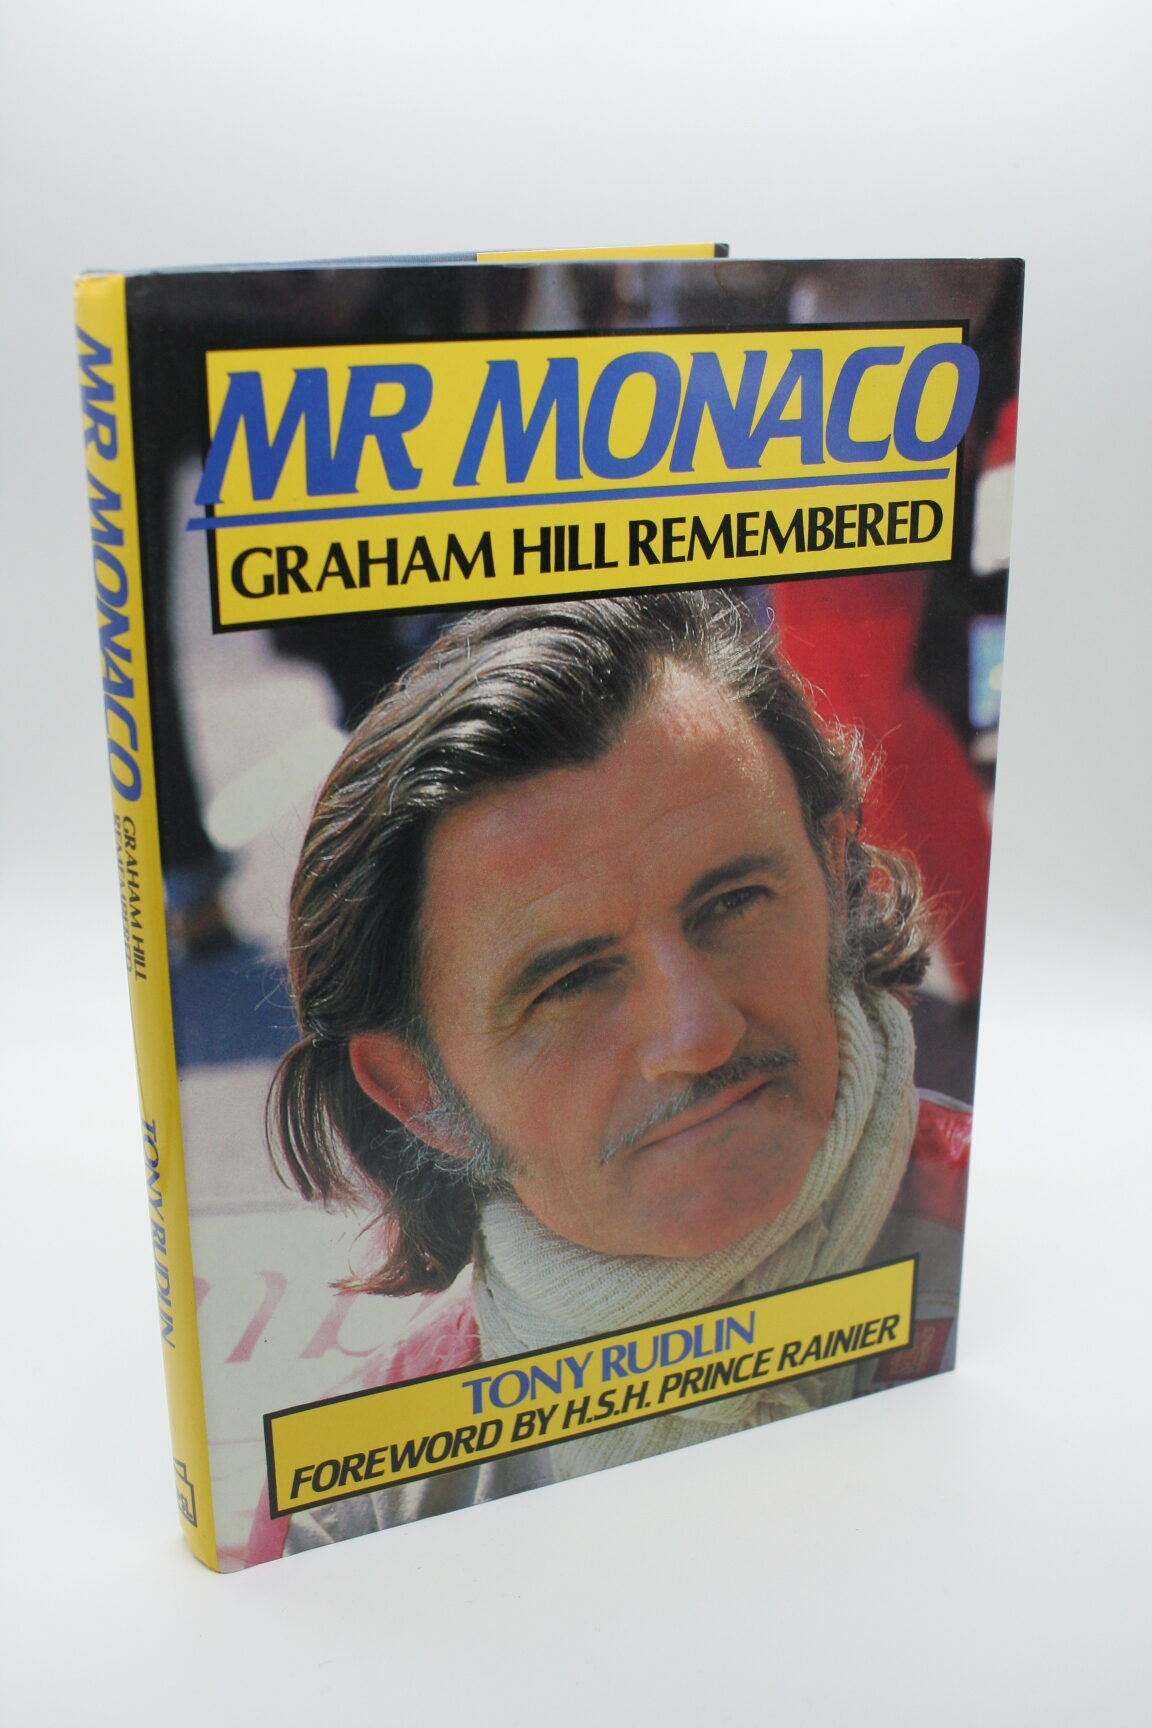 Mr Monaco: Graham Hill Remembered - Tony Rudlin